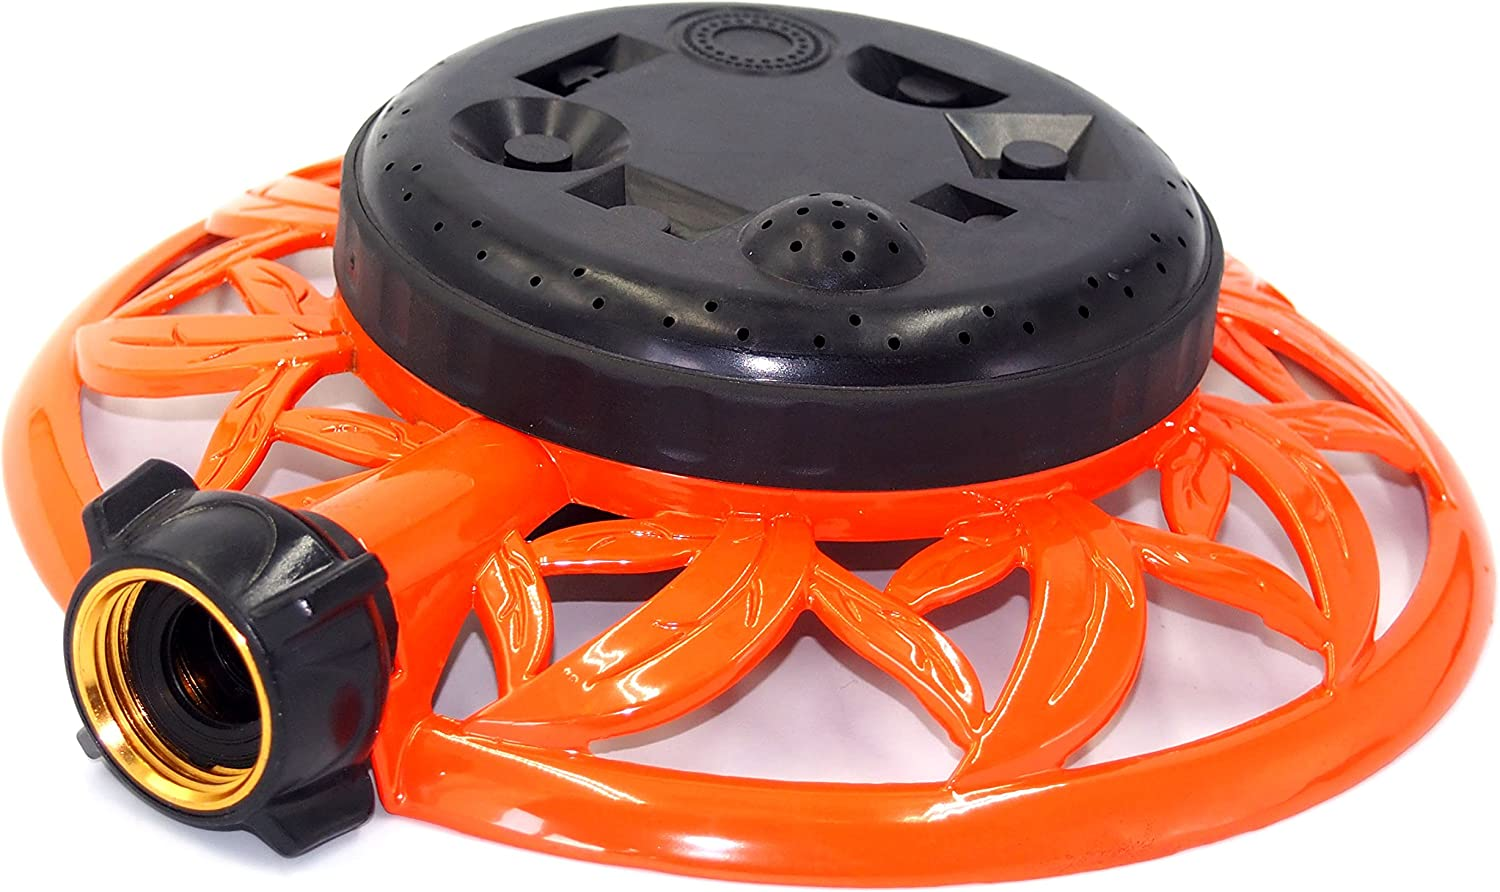 2wayz 8 Pattern Turret Garden Lawn Sprinkler with Super Heavy Duty Circle Metal Base. Powerful Water Output with No Leaks! ¾ Hose Input, 360° Connector Swivel : Garden & Outdoor